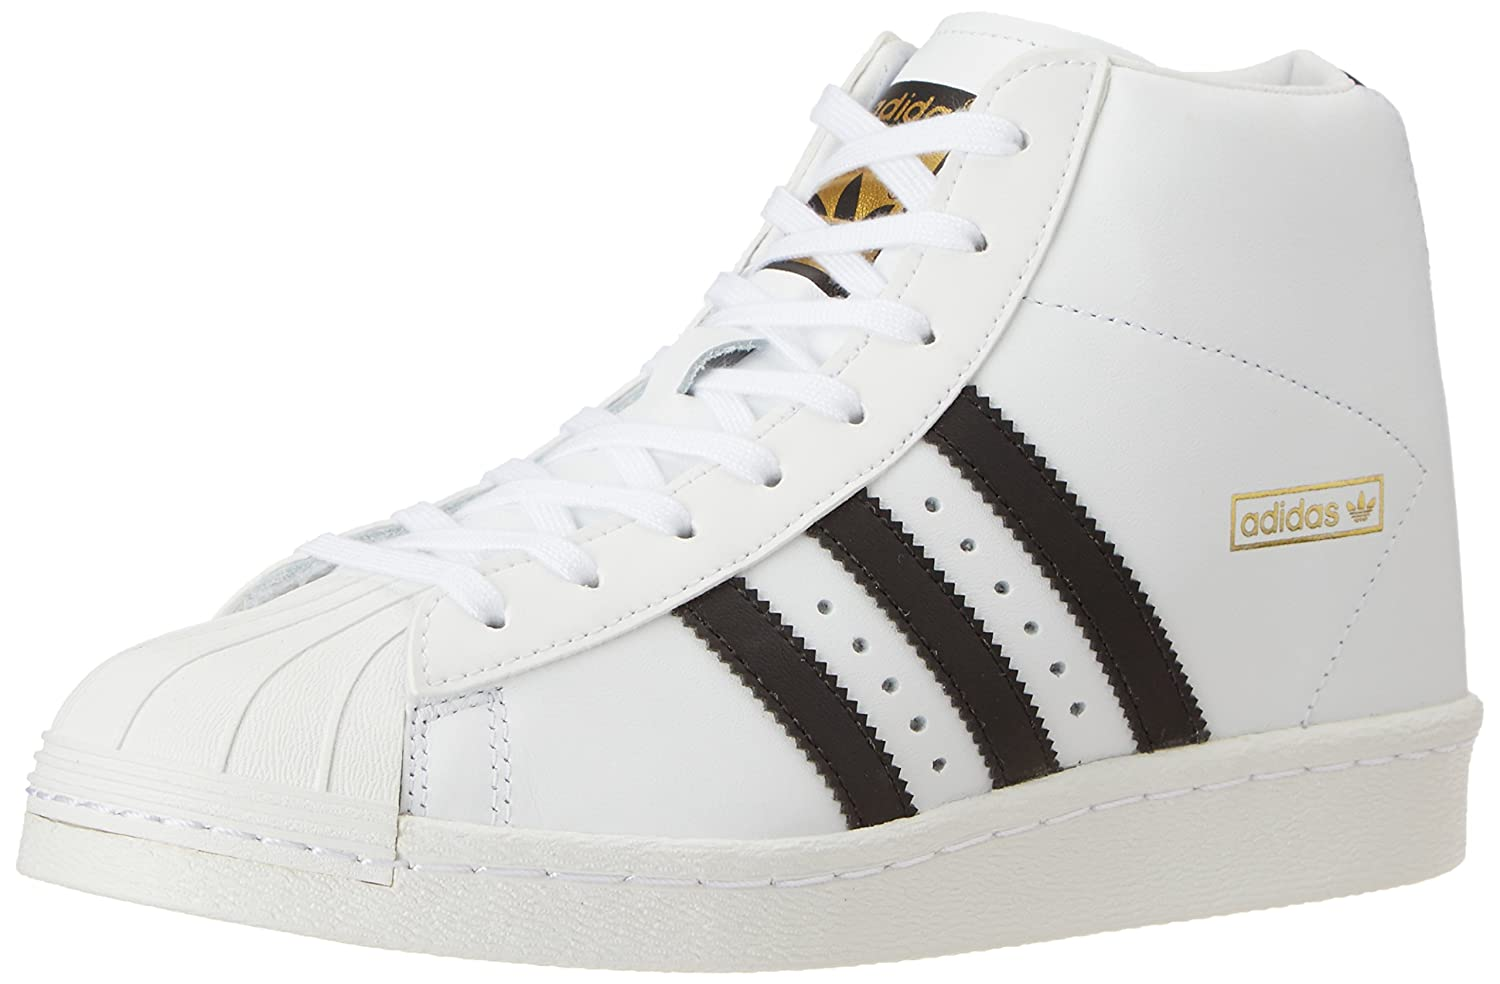 superstar up w cblack/ftwwht/goldmt Flight Club